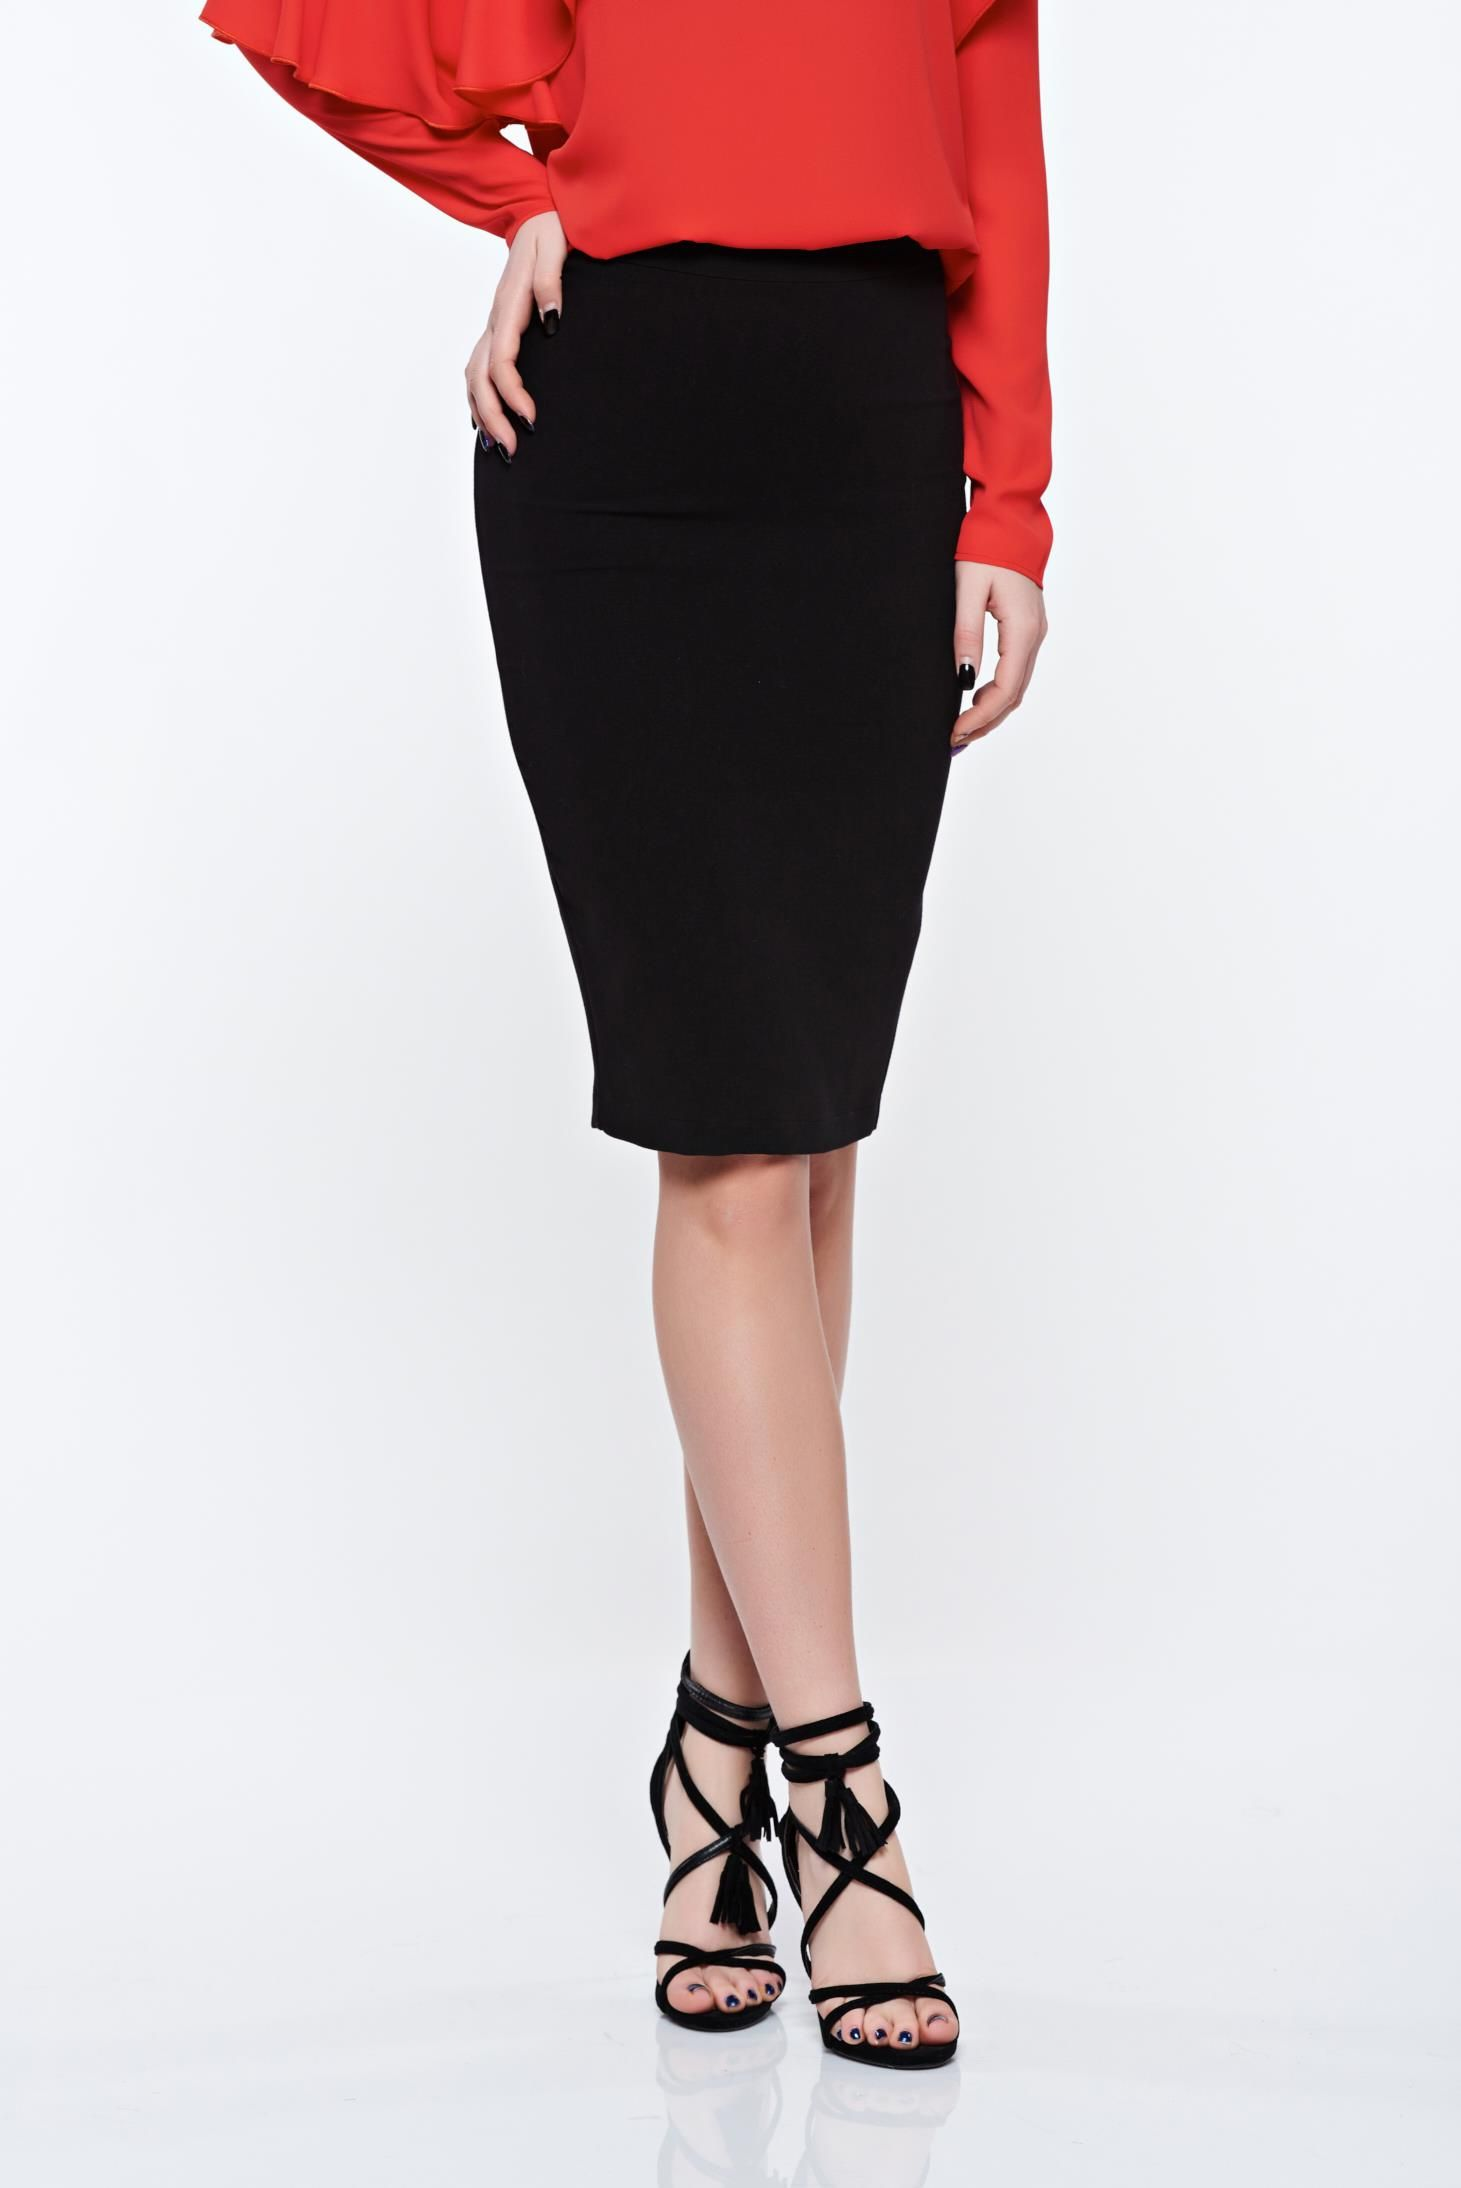 LaDonna black office pencil skirt slightly elastic fabric with inside  lining 9a7d7e360